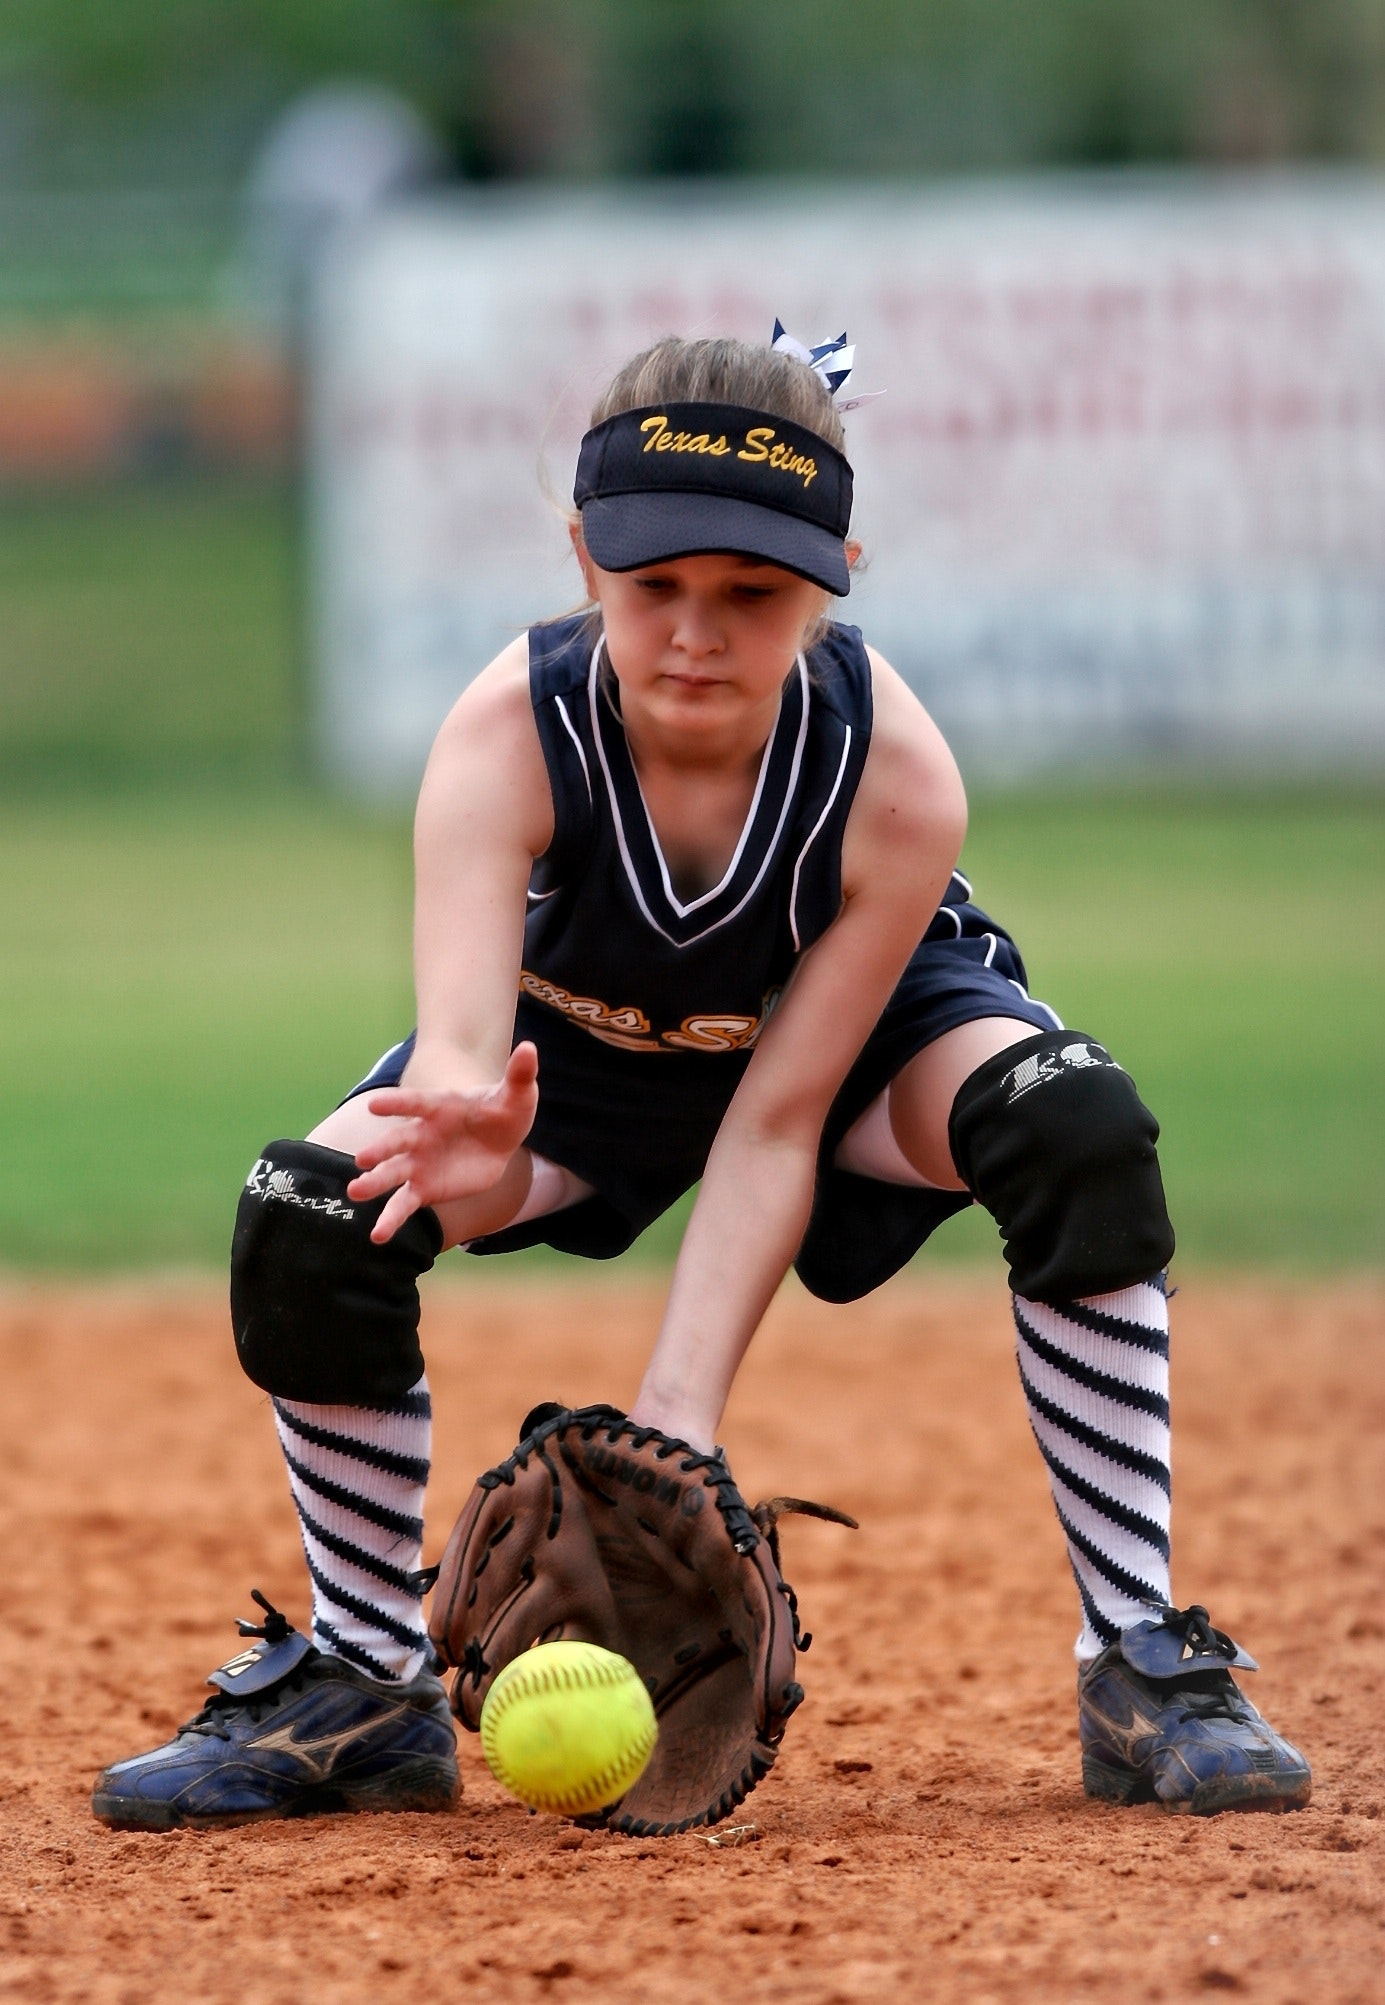 Softball player about to catch the ball photo